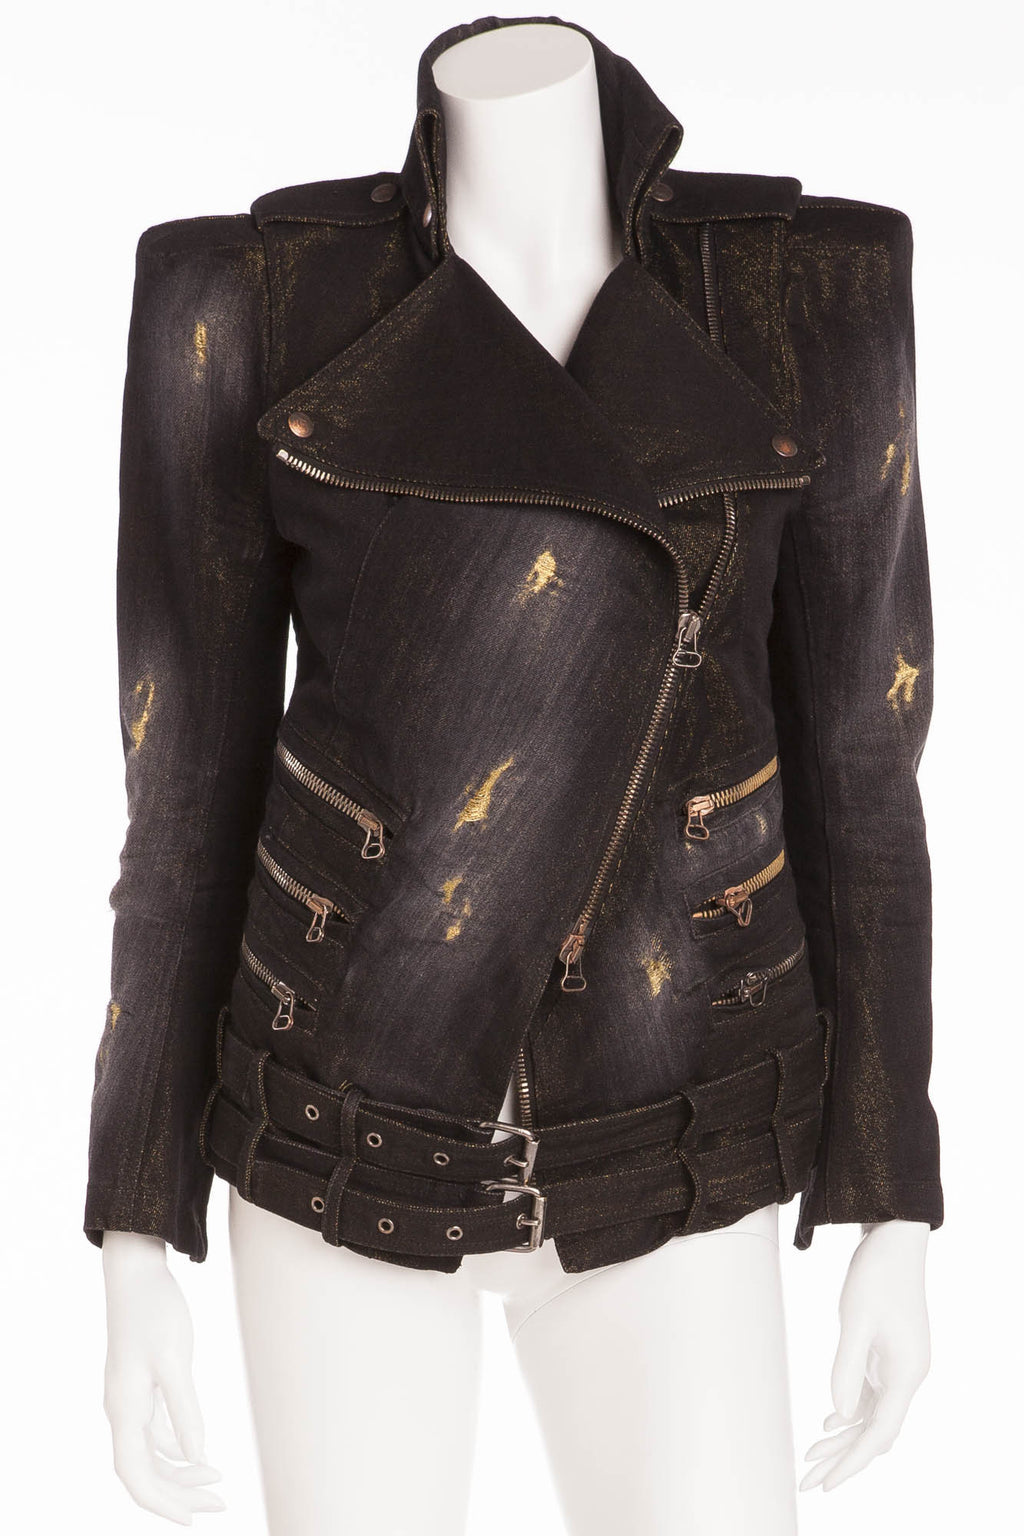 Balmain - Black Multi Zipper Denim Jacket - FR 40